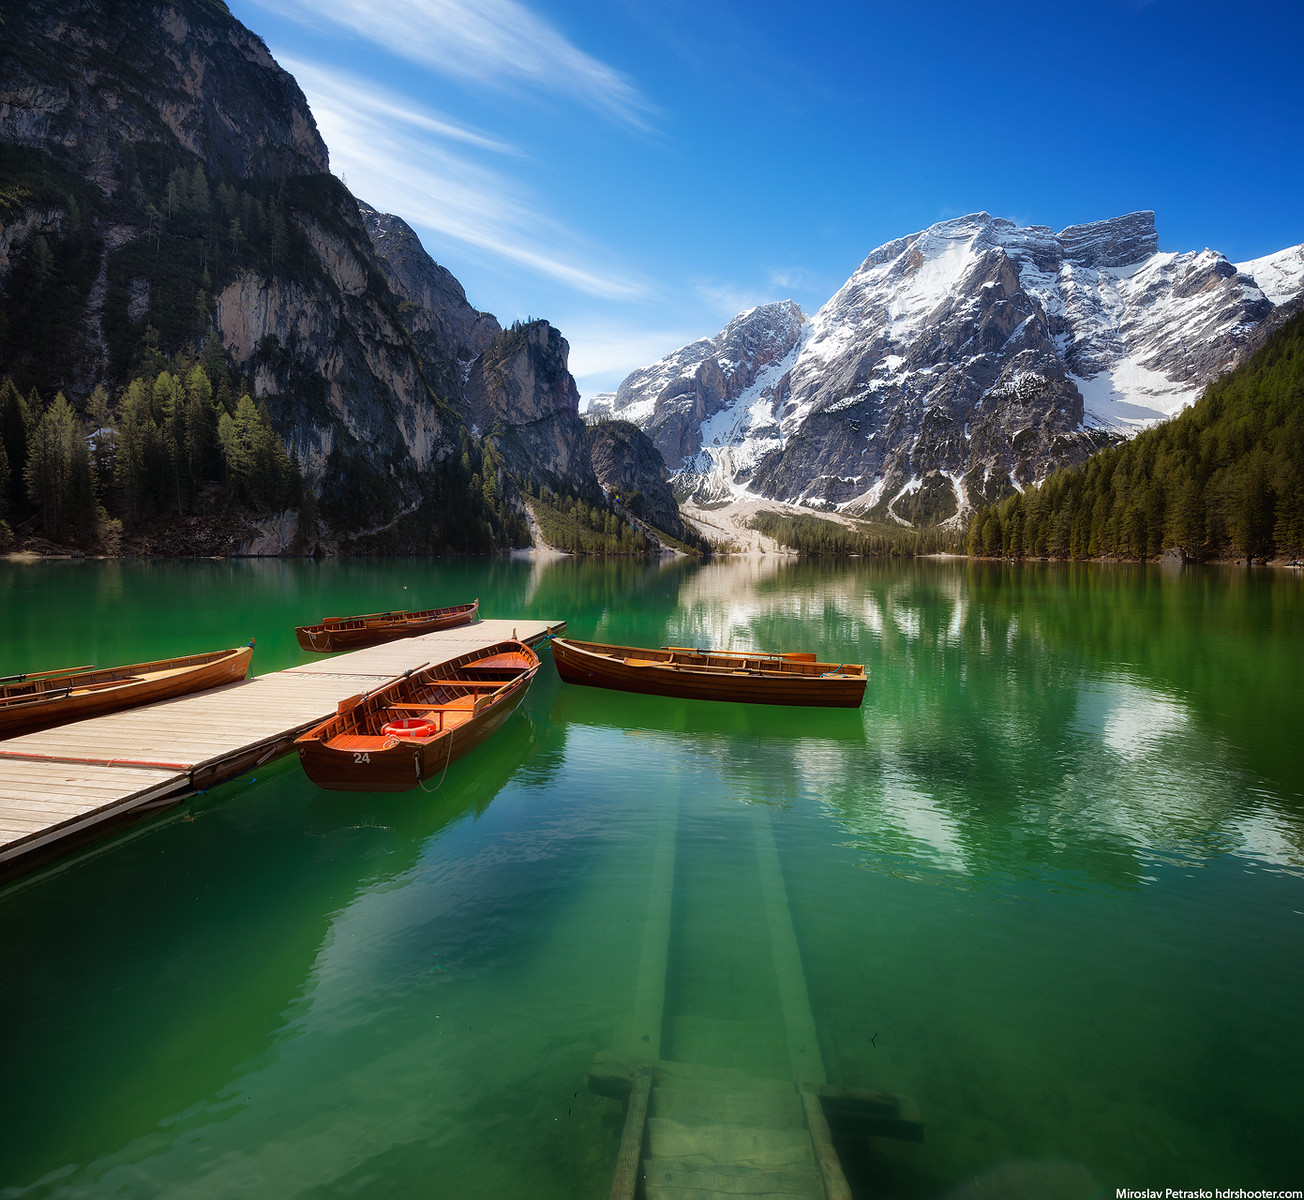 Clear water at Lago di Braies